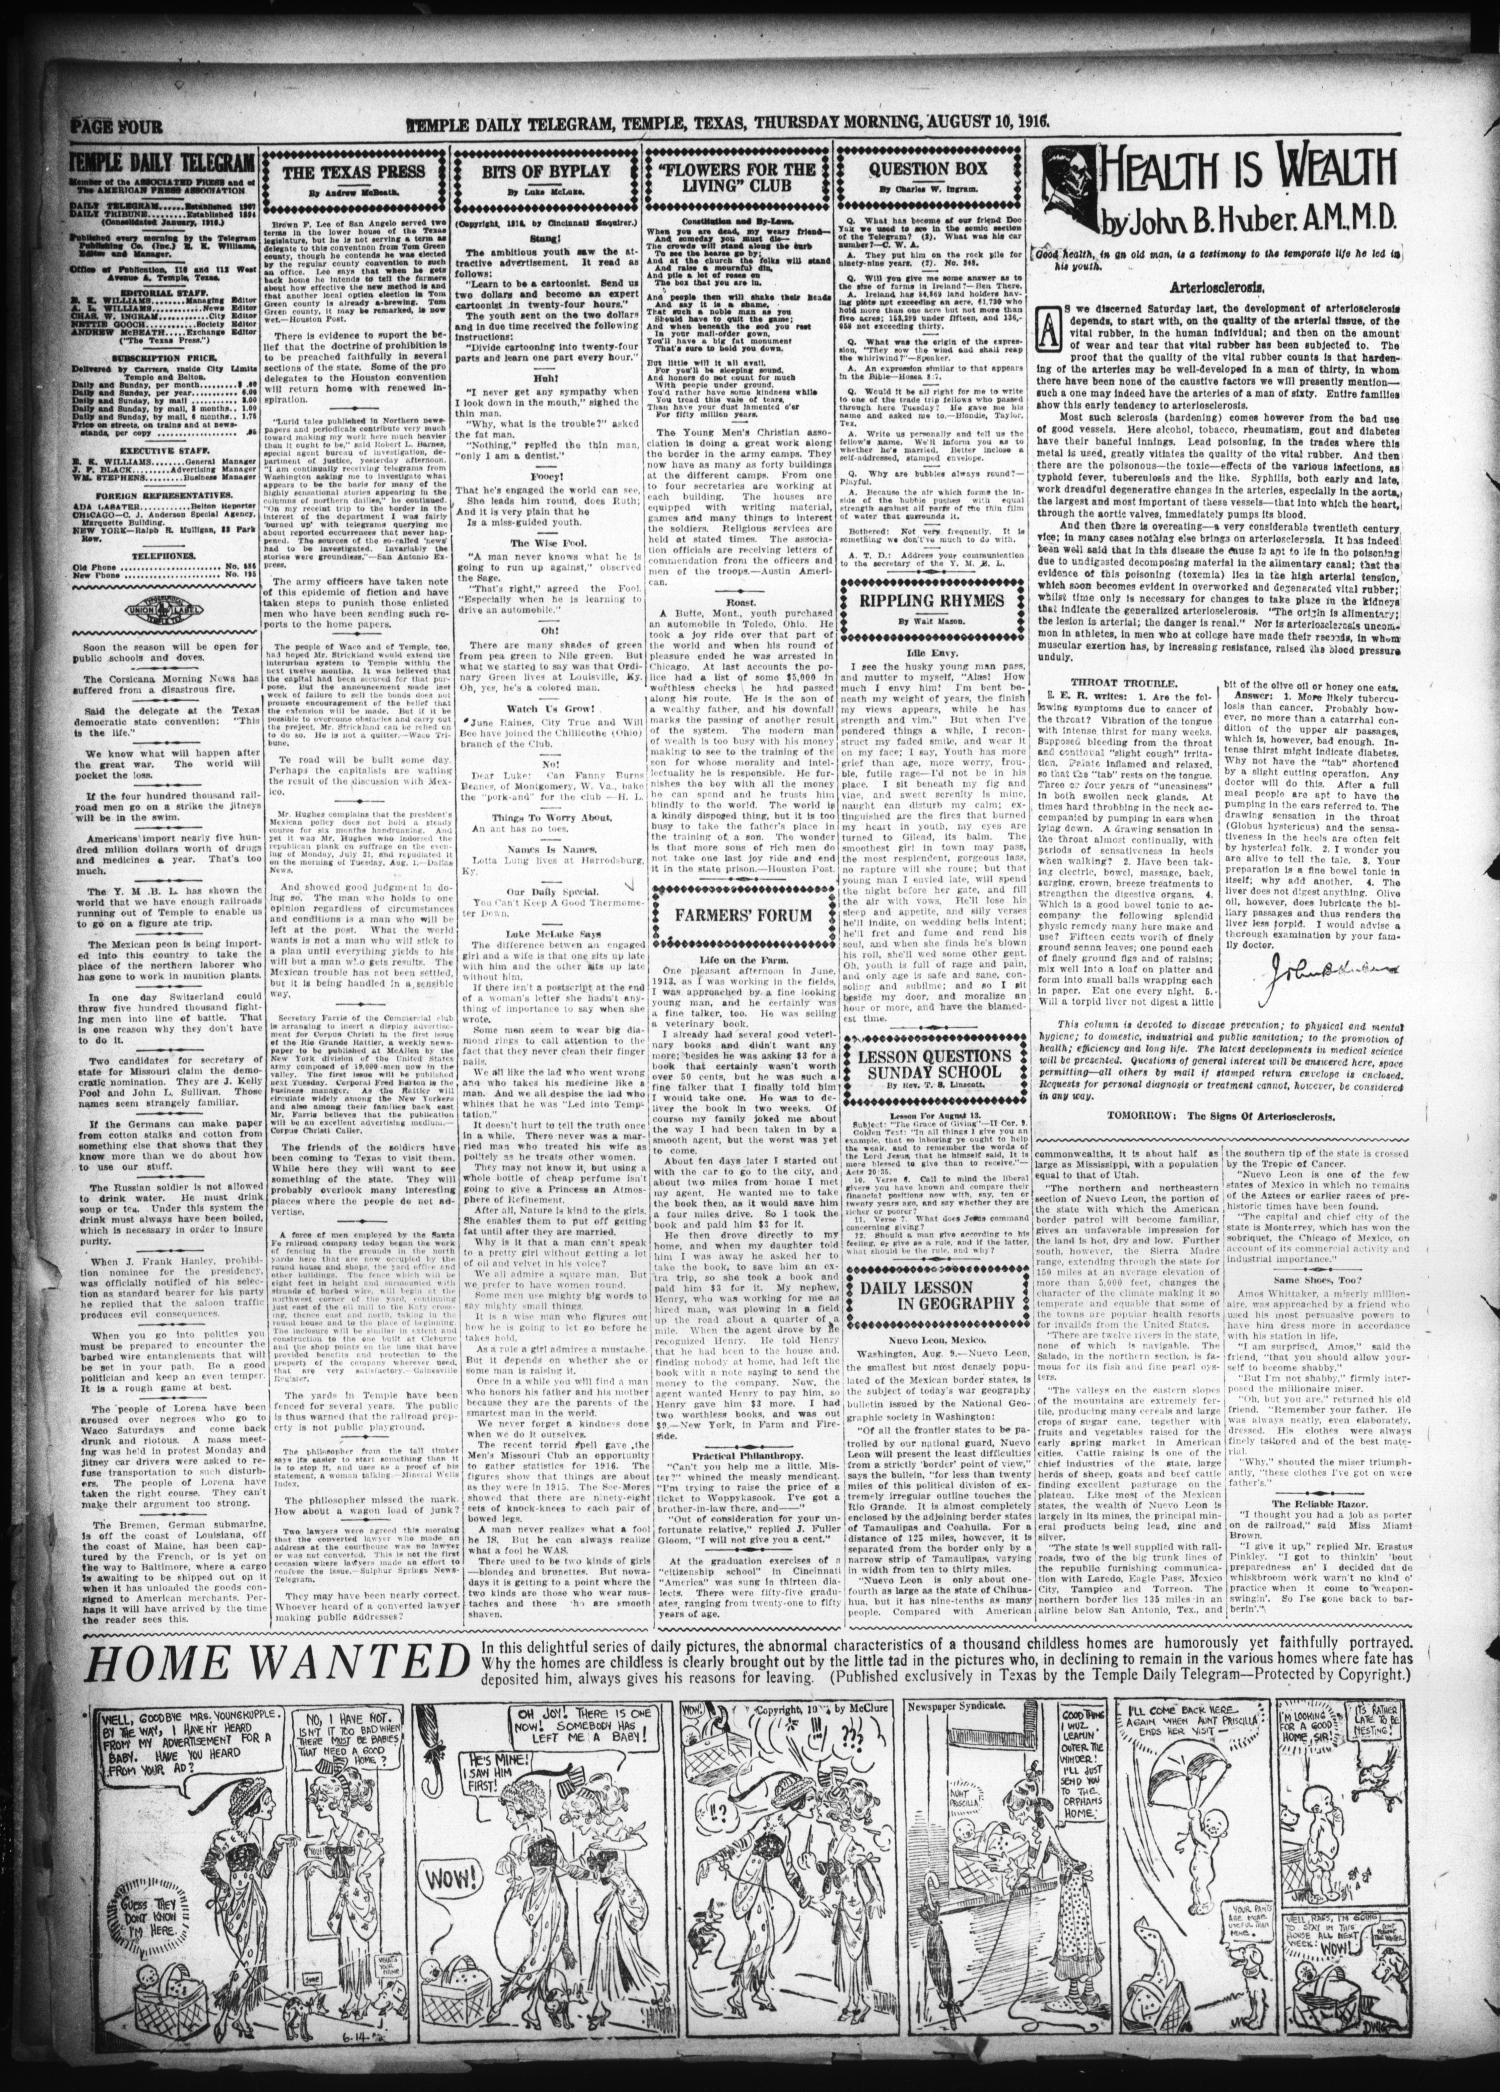 Temple Daily Telegram (Temple, Tex.), Vol. 9, No. 269, Ed. 1 Thursday, August 10, 1916                                                                                                      [Sequence #]: 4 of 8